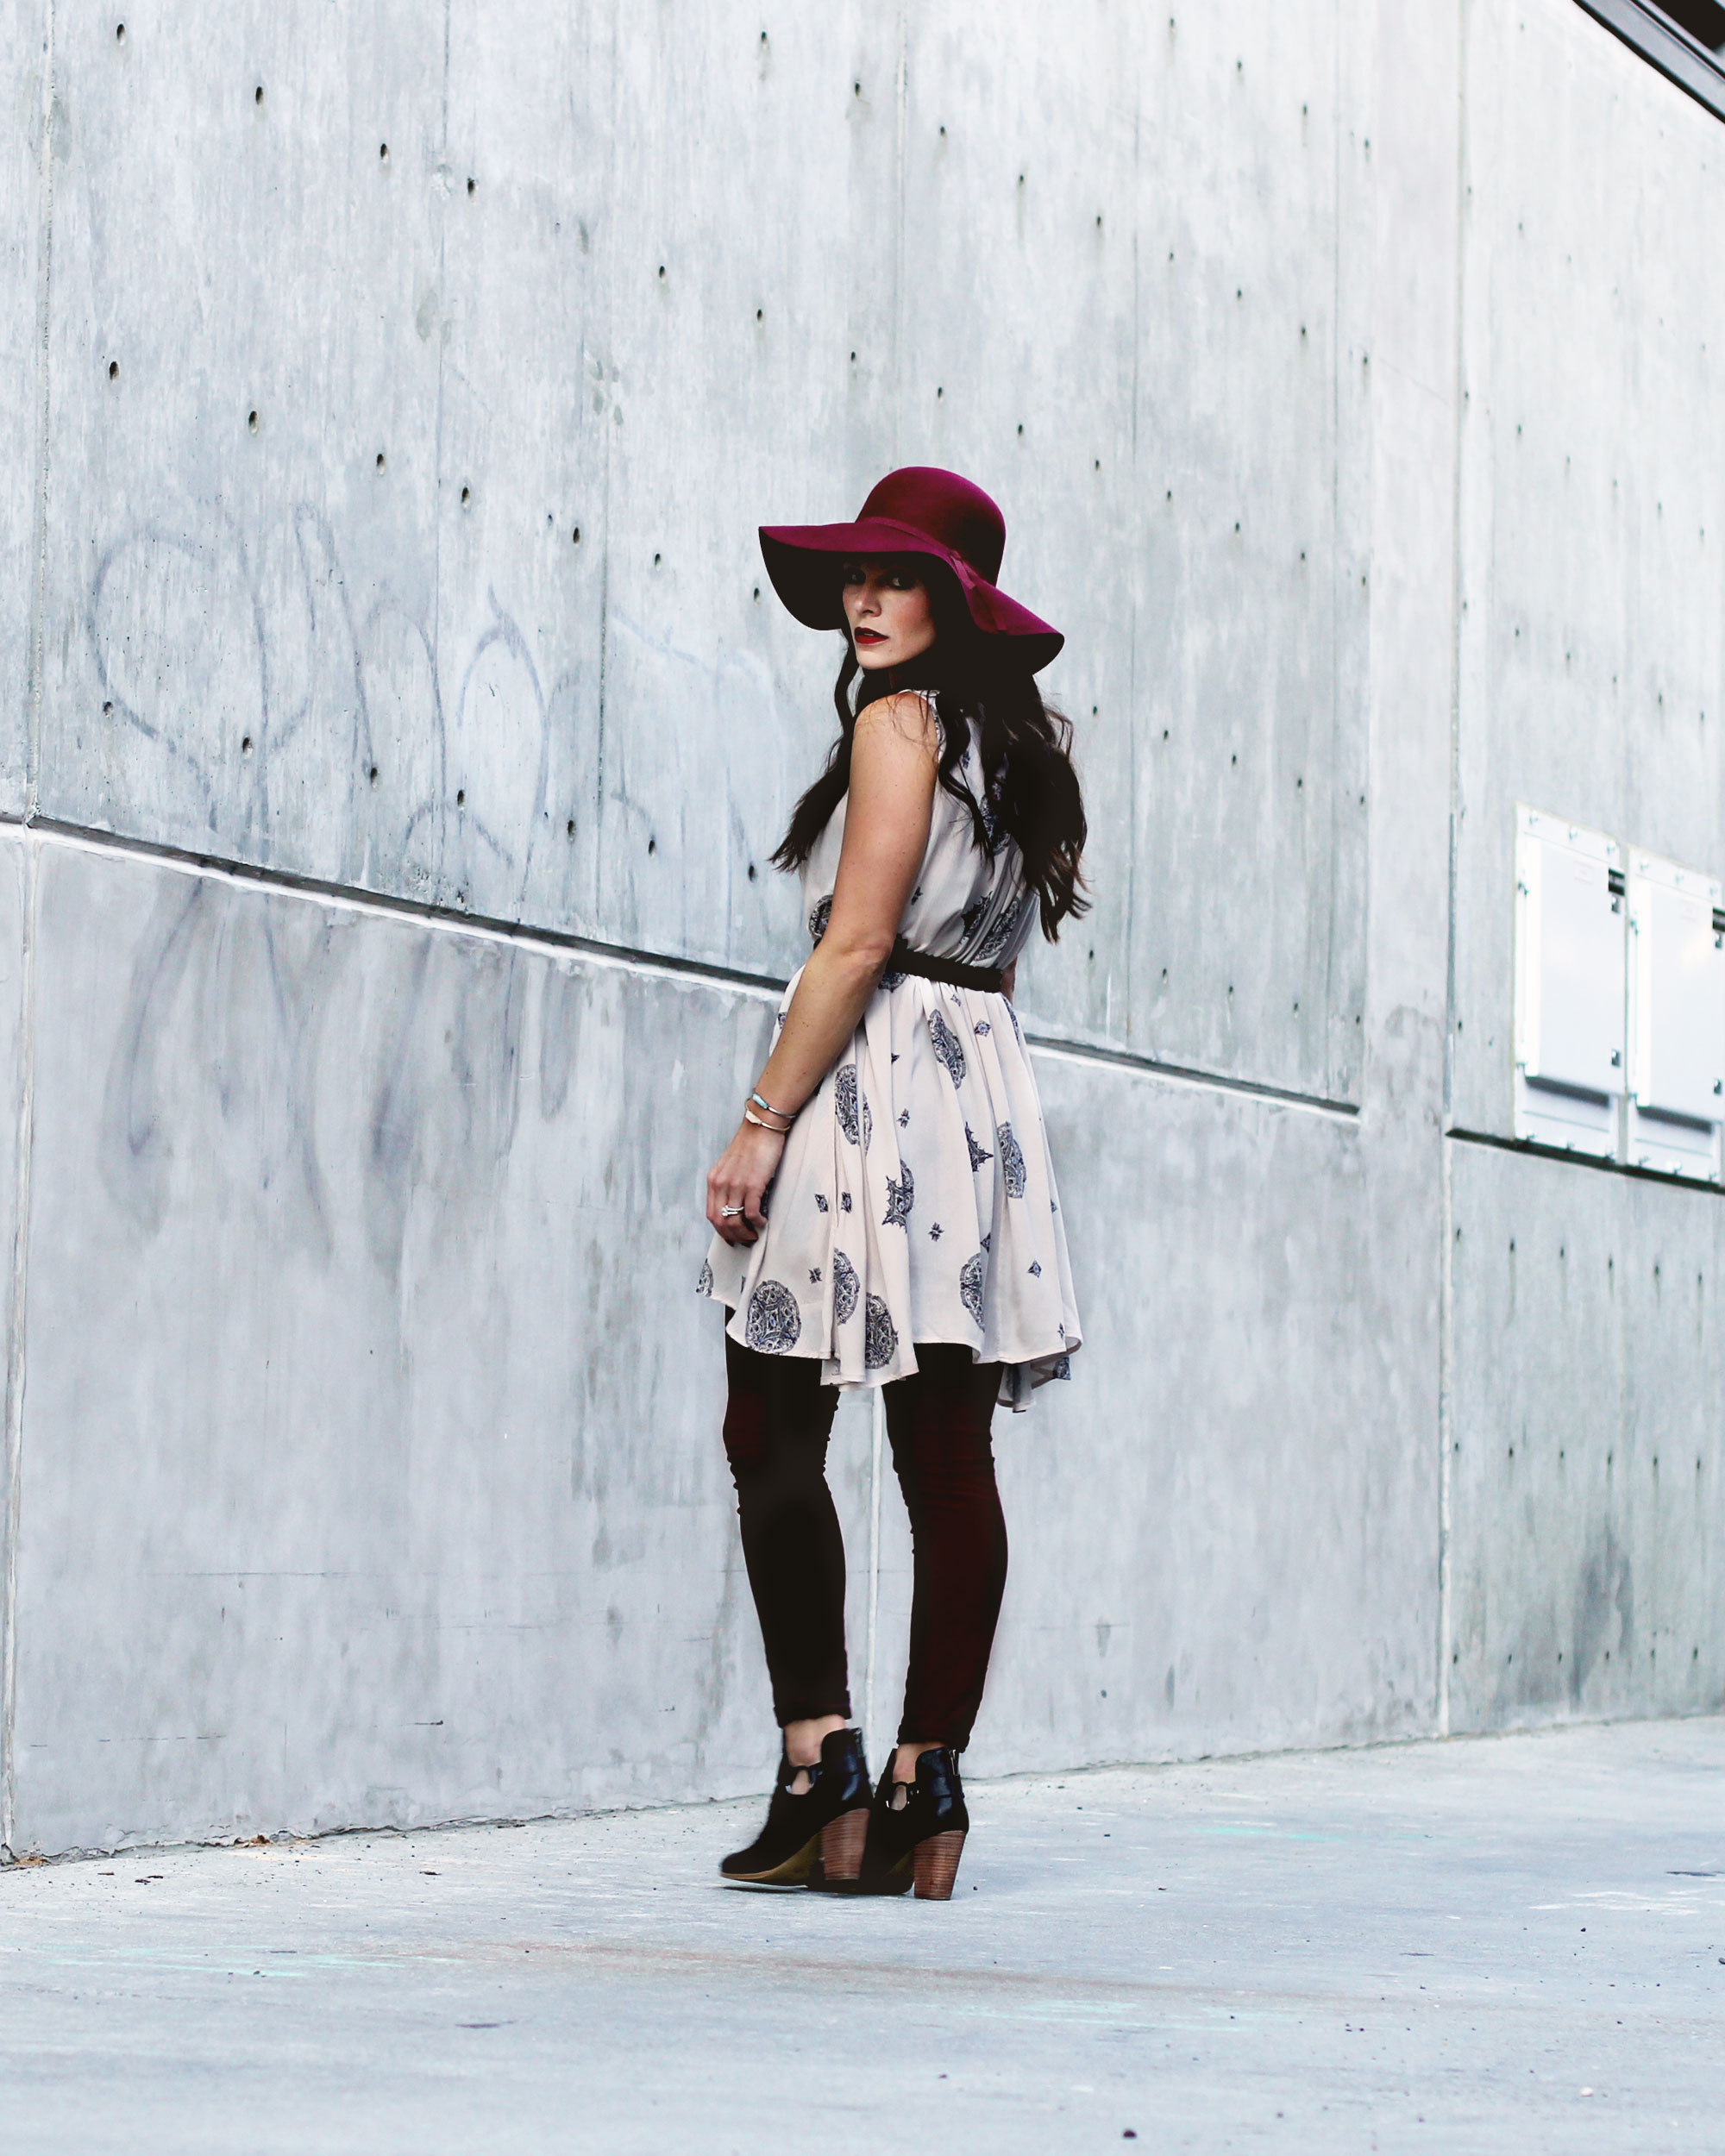 Fall Fashion on www.me-and-mrjones.com, Free People Tree Swing Top, J.Crew Cords, Old Navy Felt Floppy Hat, SeychellesImpossible Booties, Rebecca Minkoff Mini Fiona